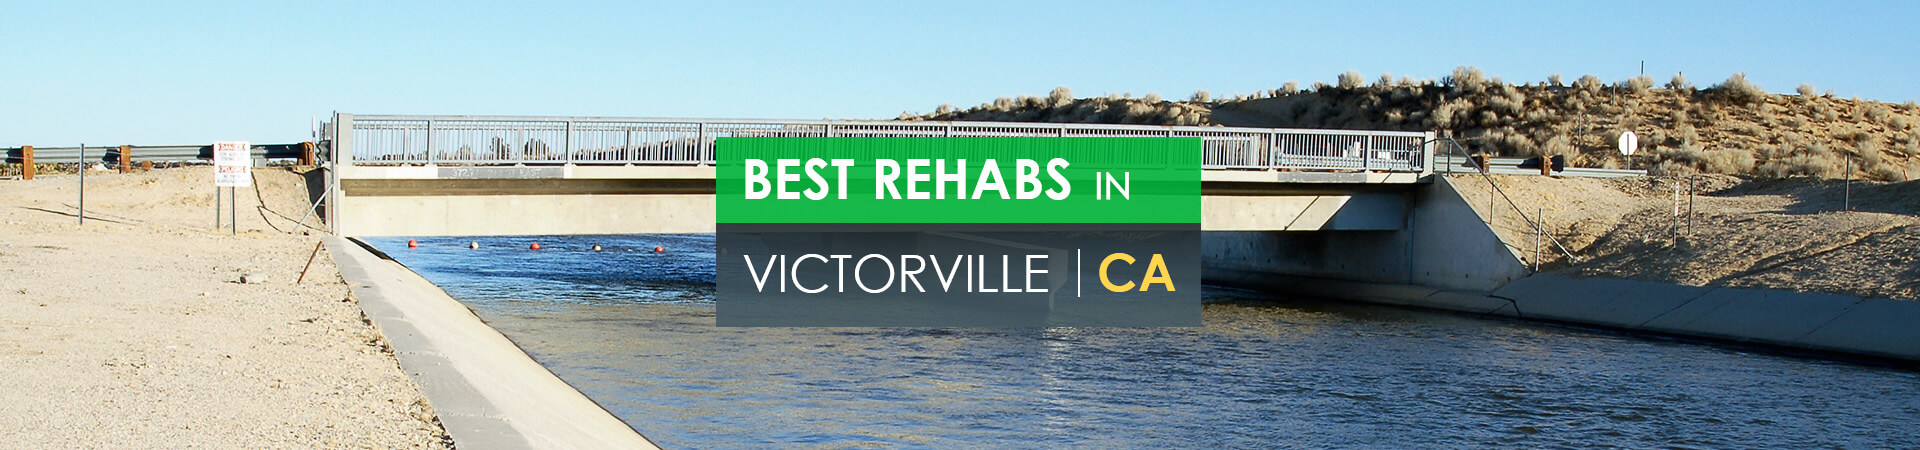 Best rehabs in Victorville, CA